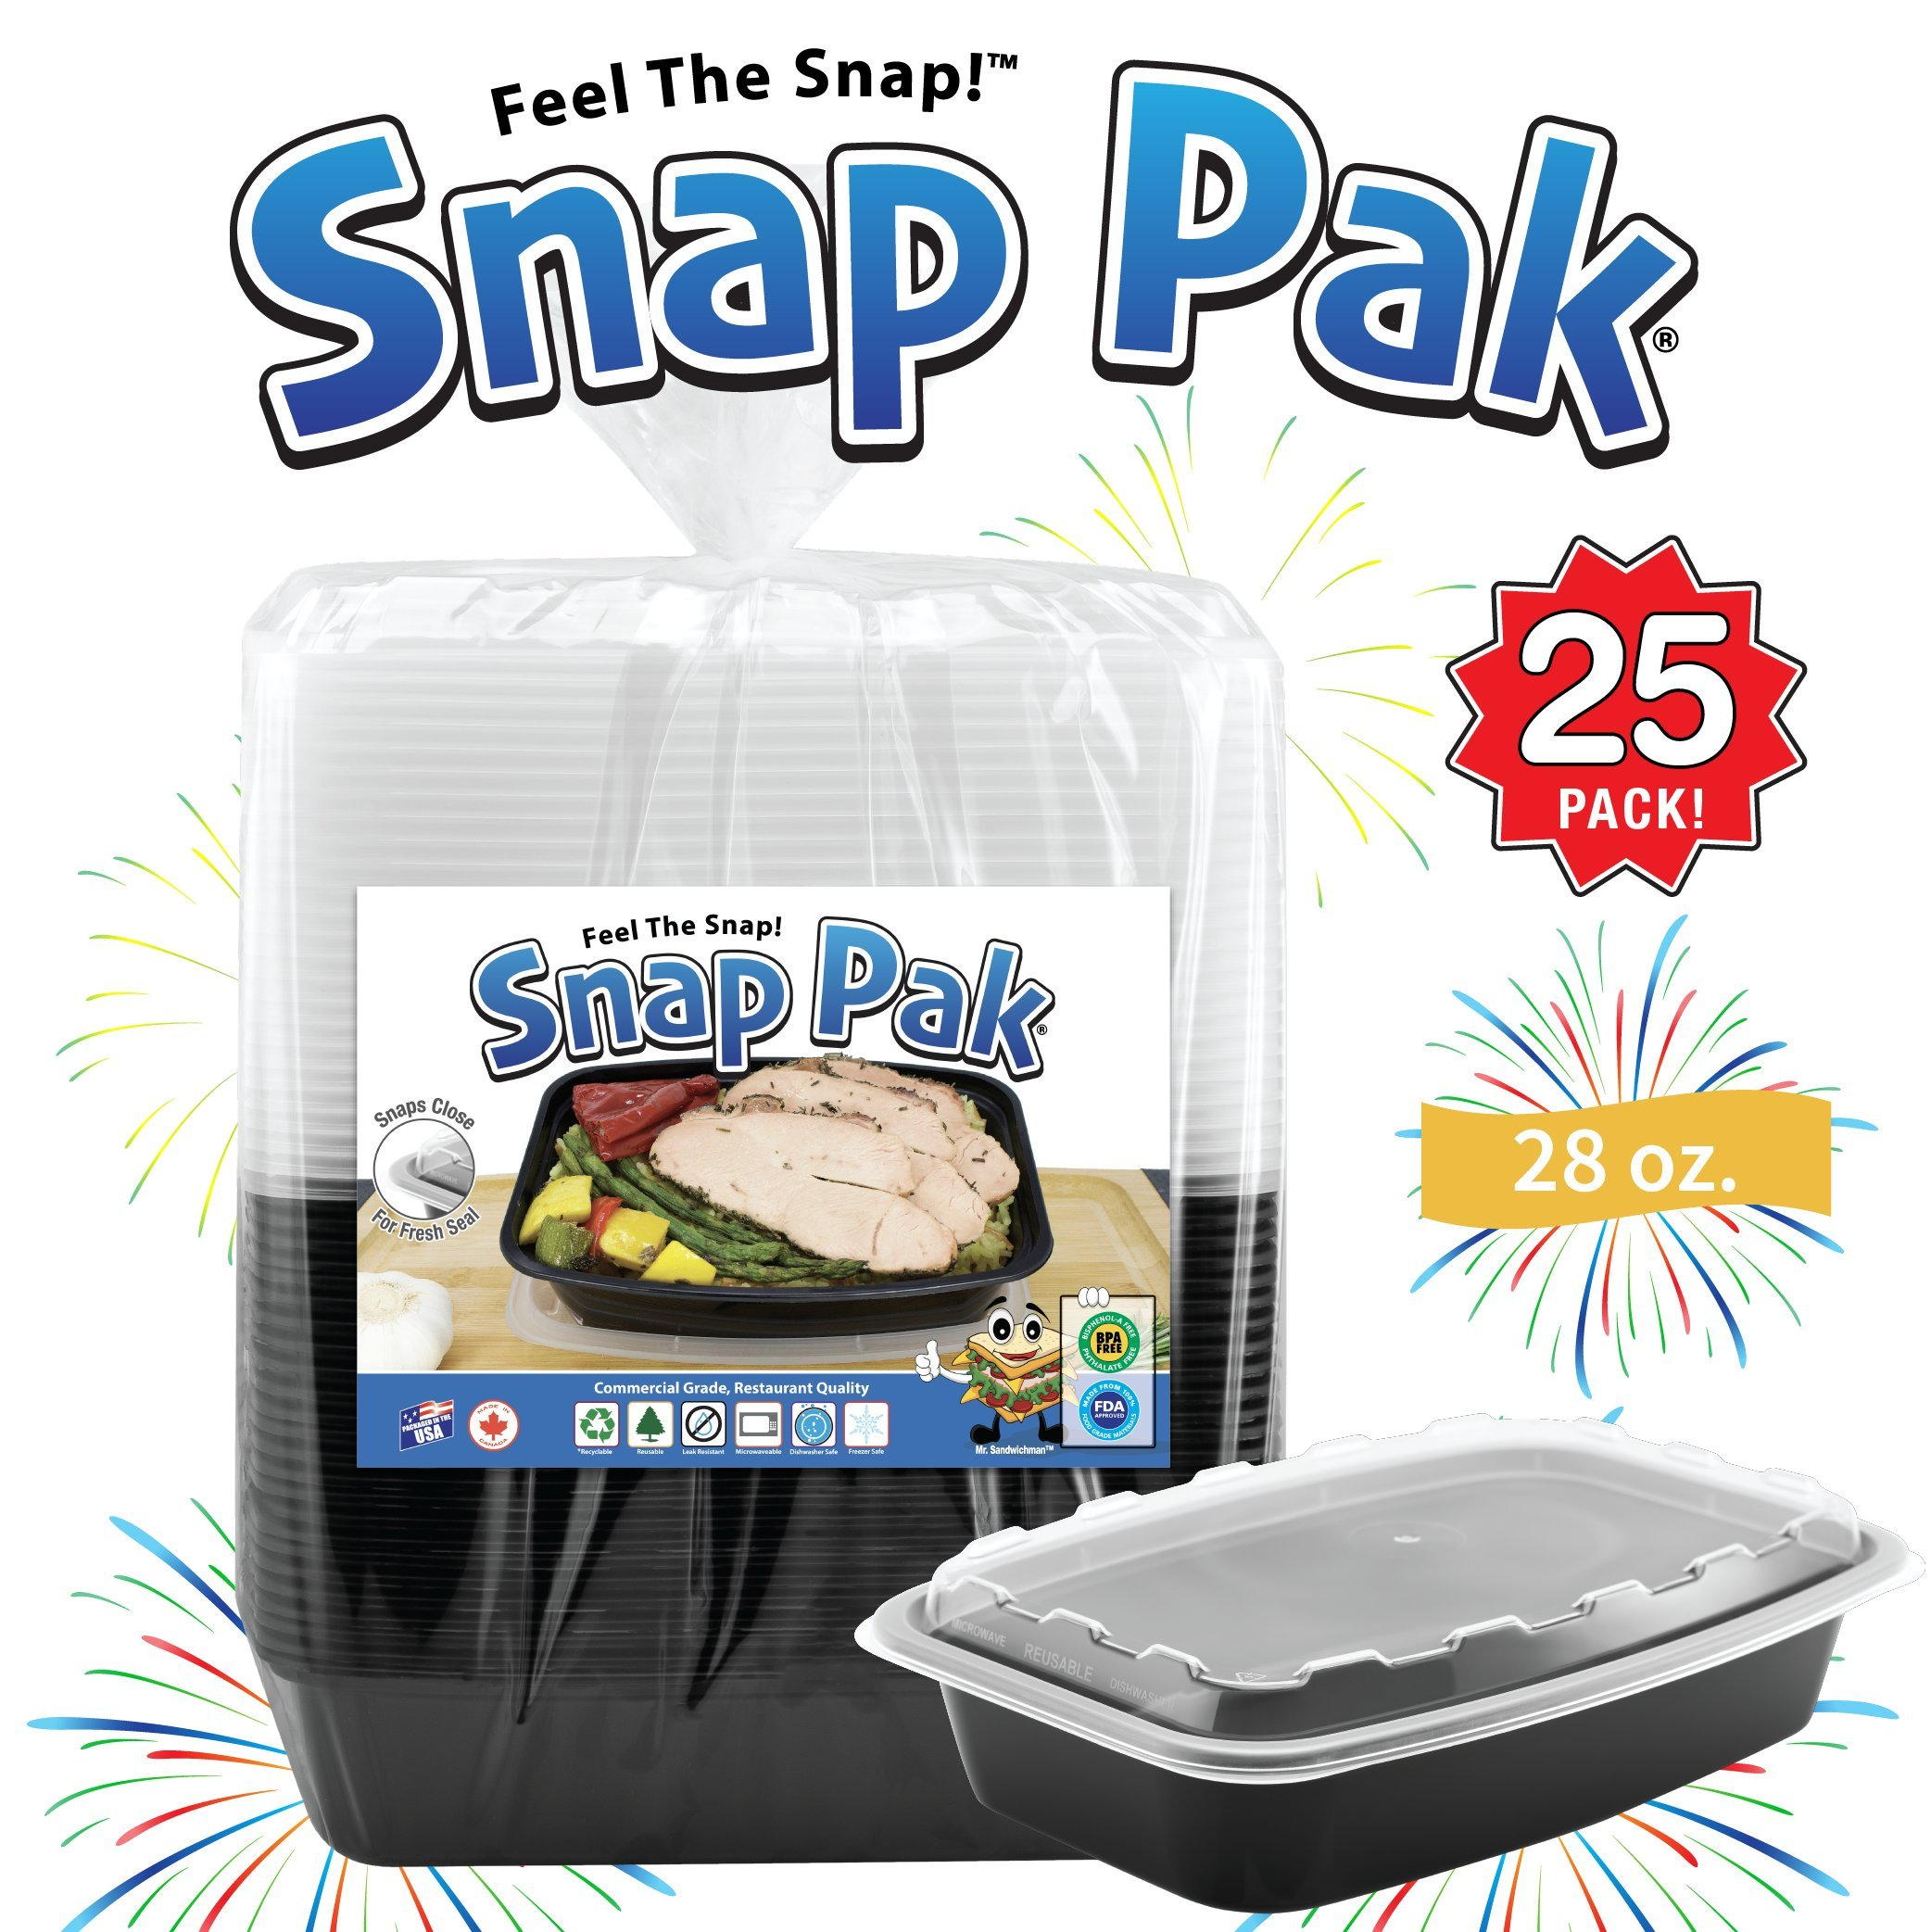 Snap Pak 12010 Food Storage Containers 28 oz. 25 Pack! Black/Clear